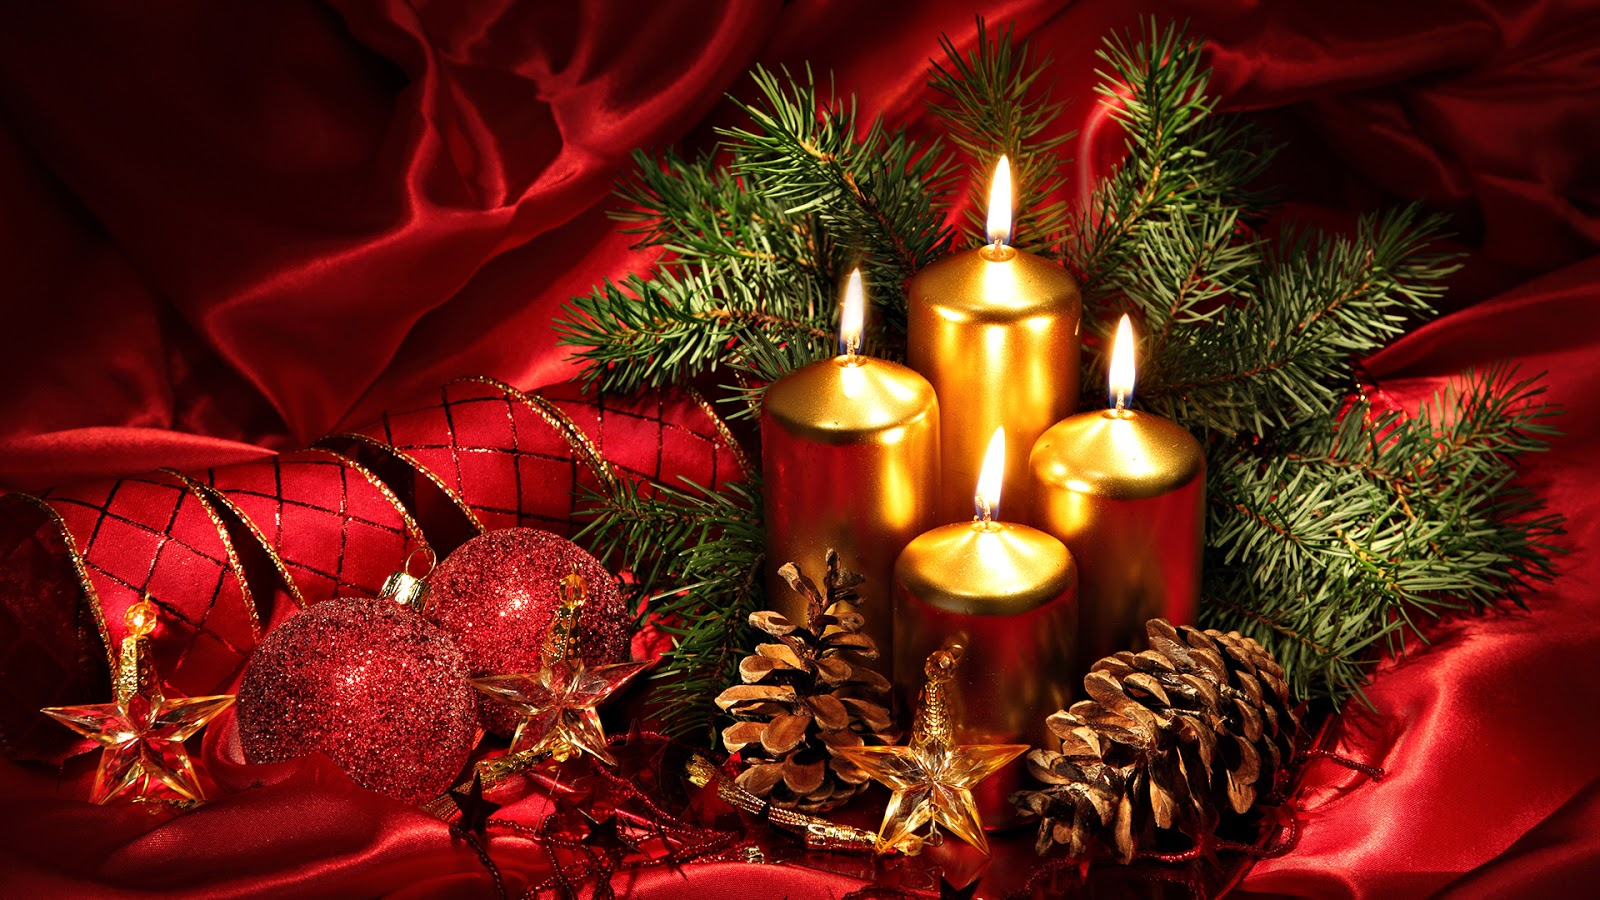 Beautiful Merry Christmas Wallpaper Free Download